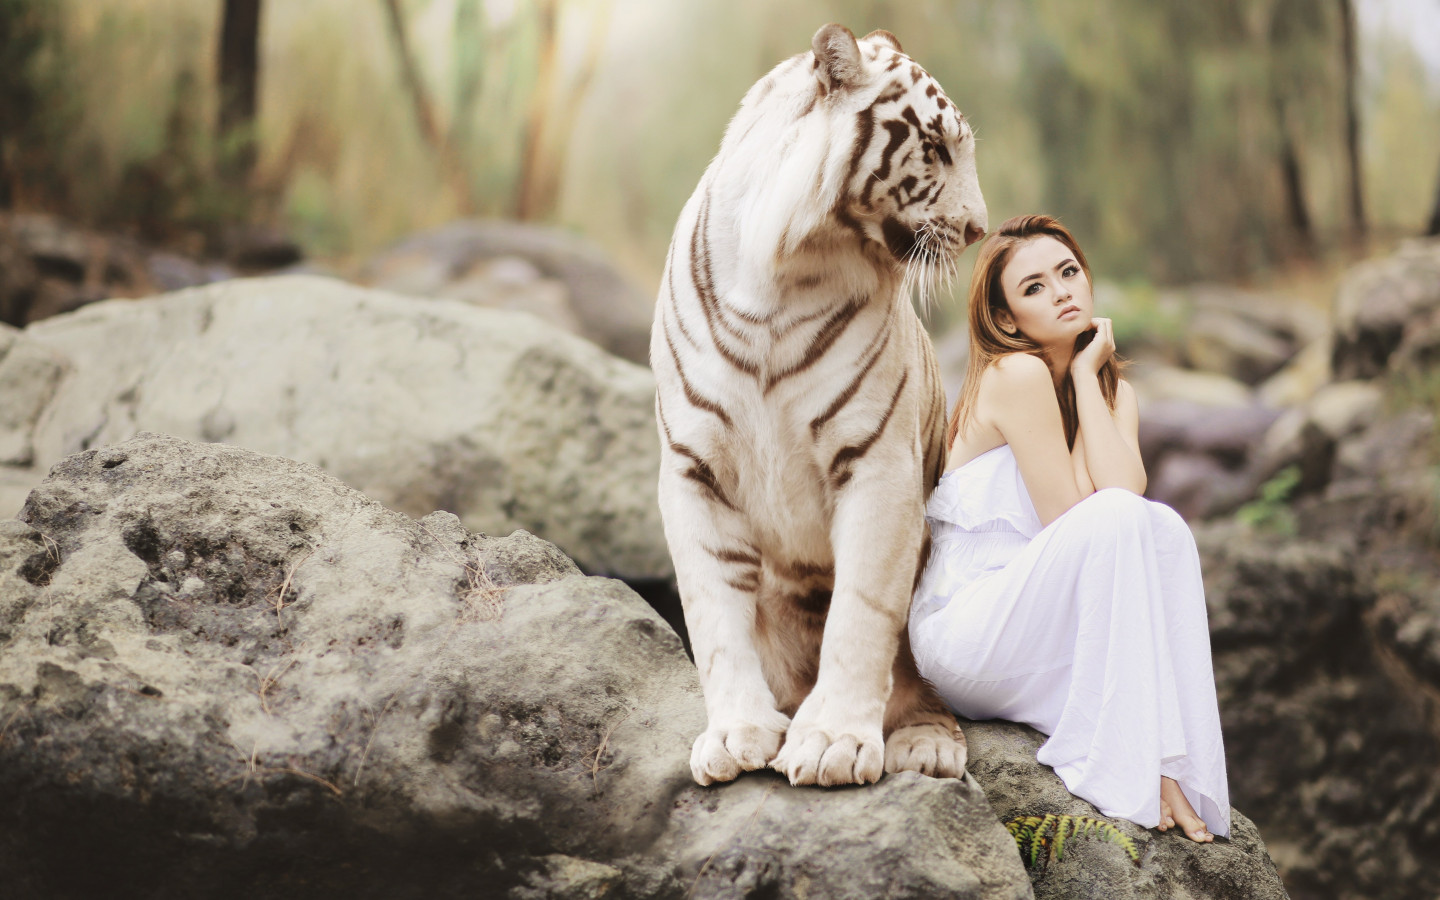 Bengal tiger and a beautiful girl | 1440x900 wallpaper